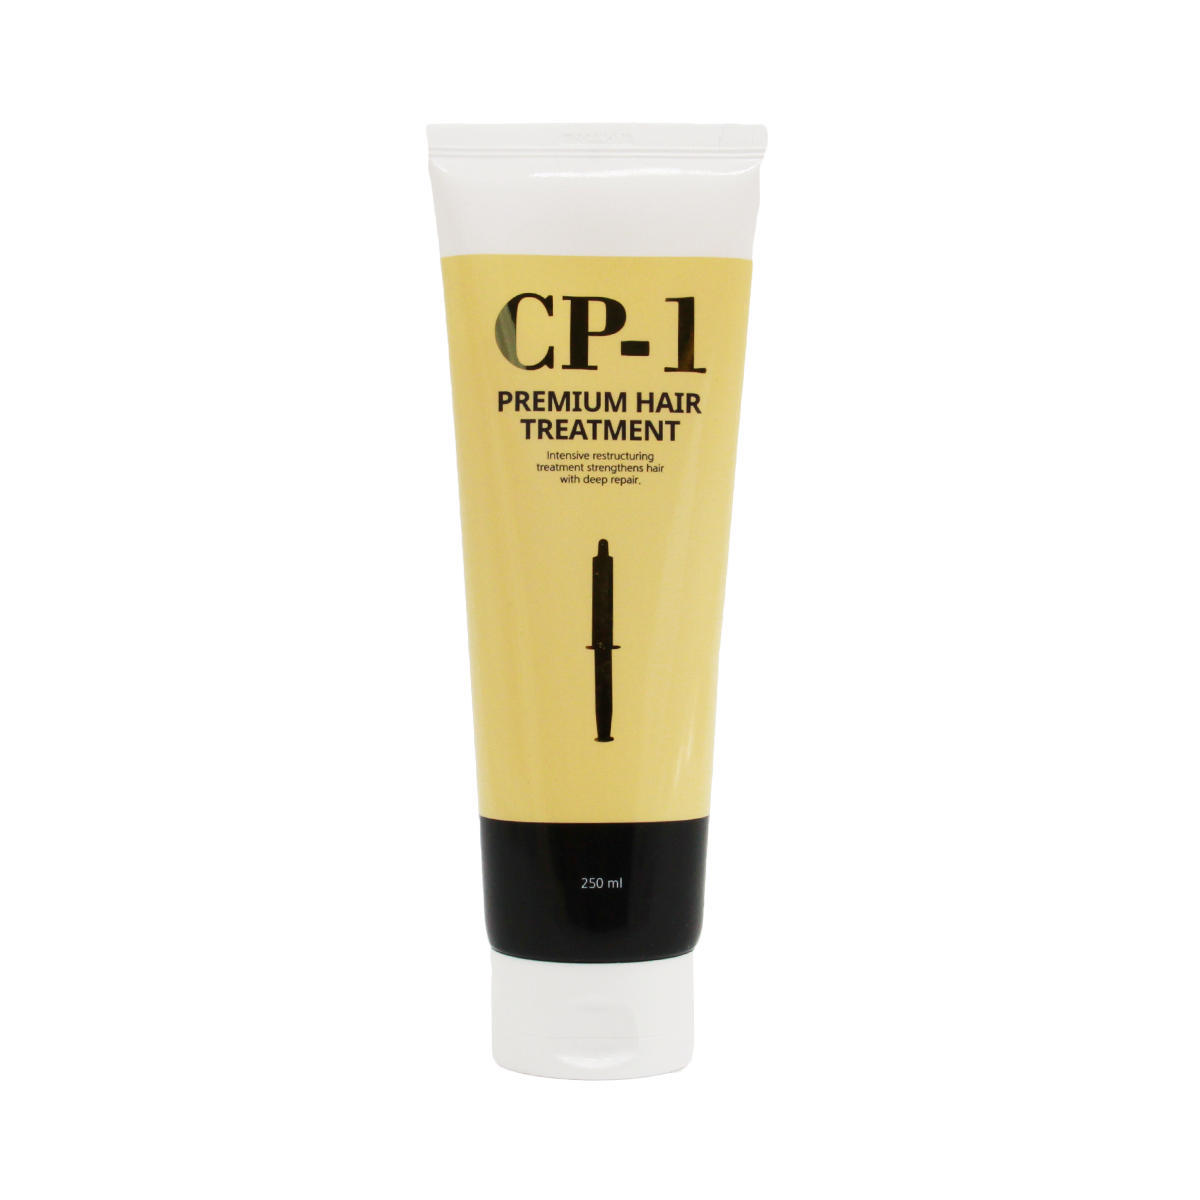 Уход за волосами Маска для волос Esthetic House CP-1 Ceramide Treatment Protein Repair System, 250 мл import_files_4d_4d92ecb65a5e11e980fb3408042974b1_4d92ecb75a5e11e980fb3408042974b1.jpg